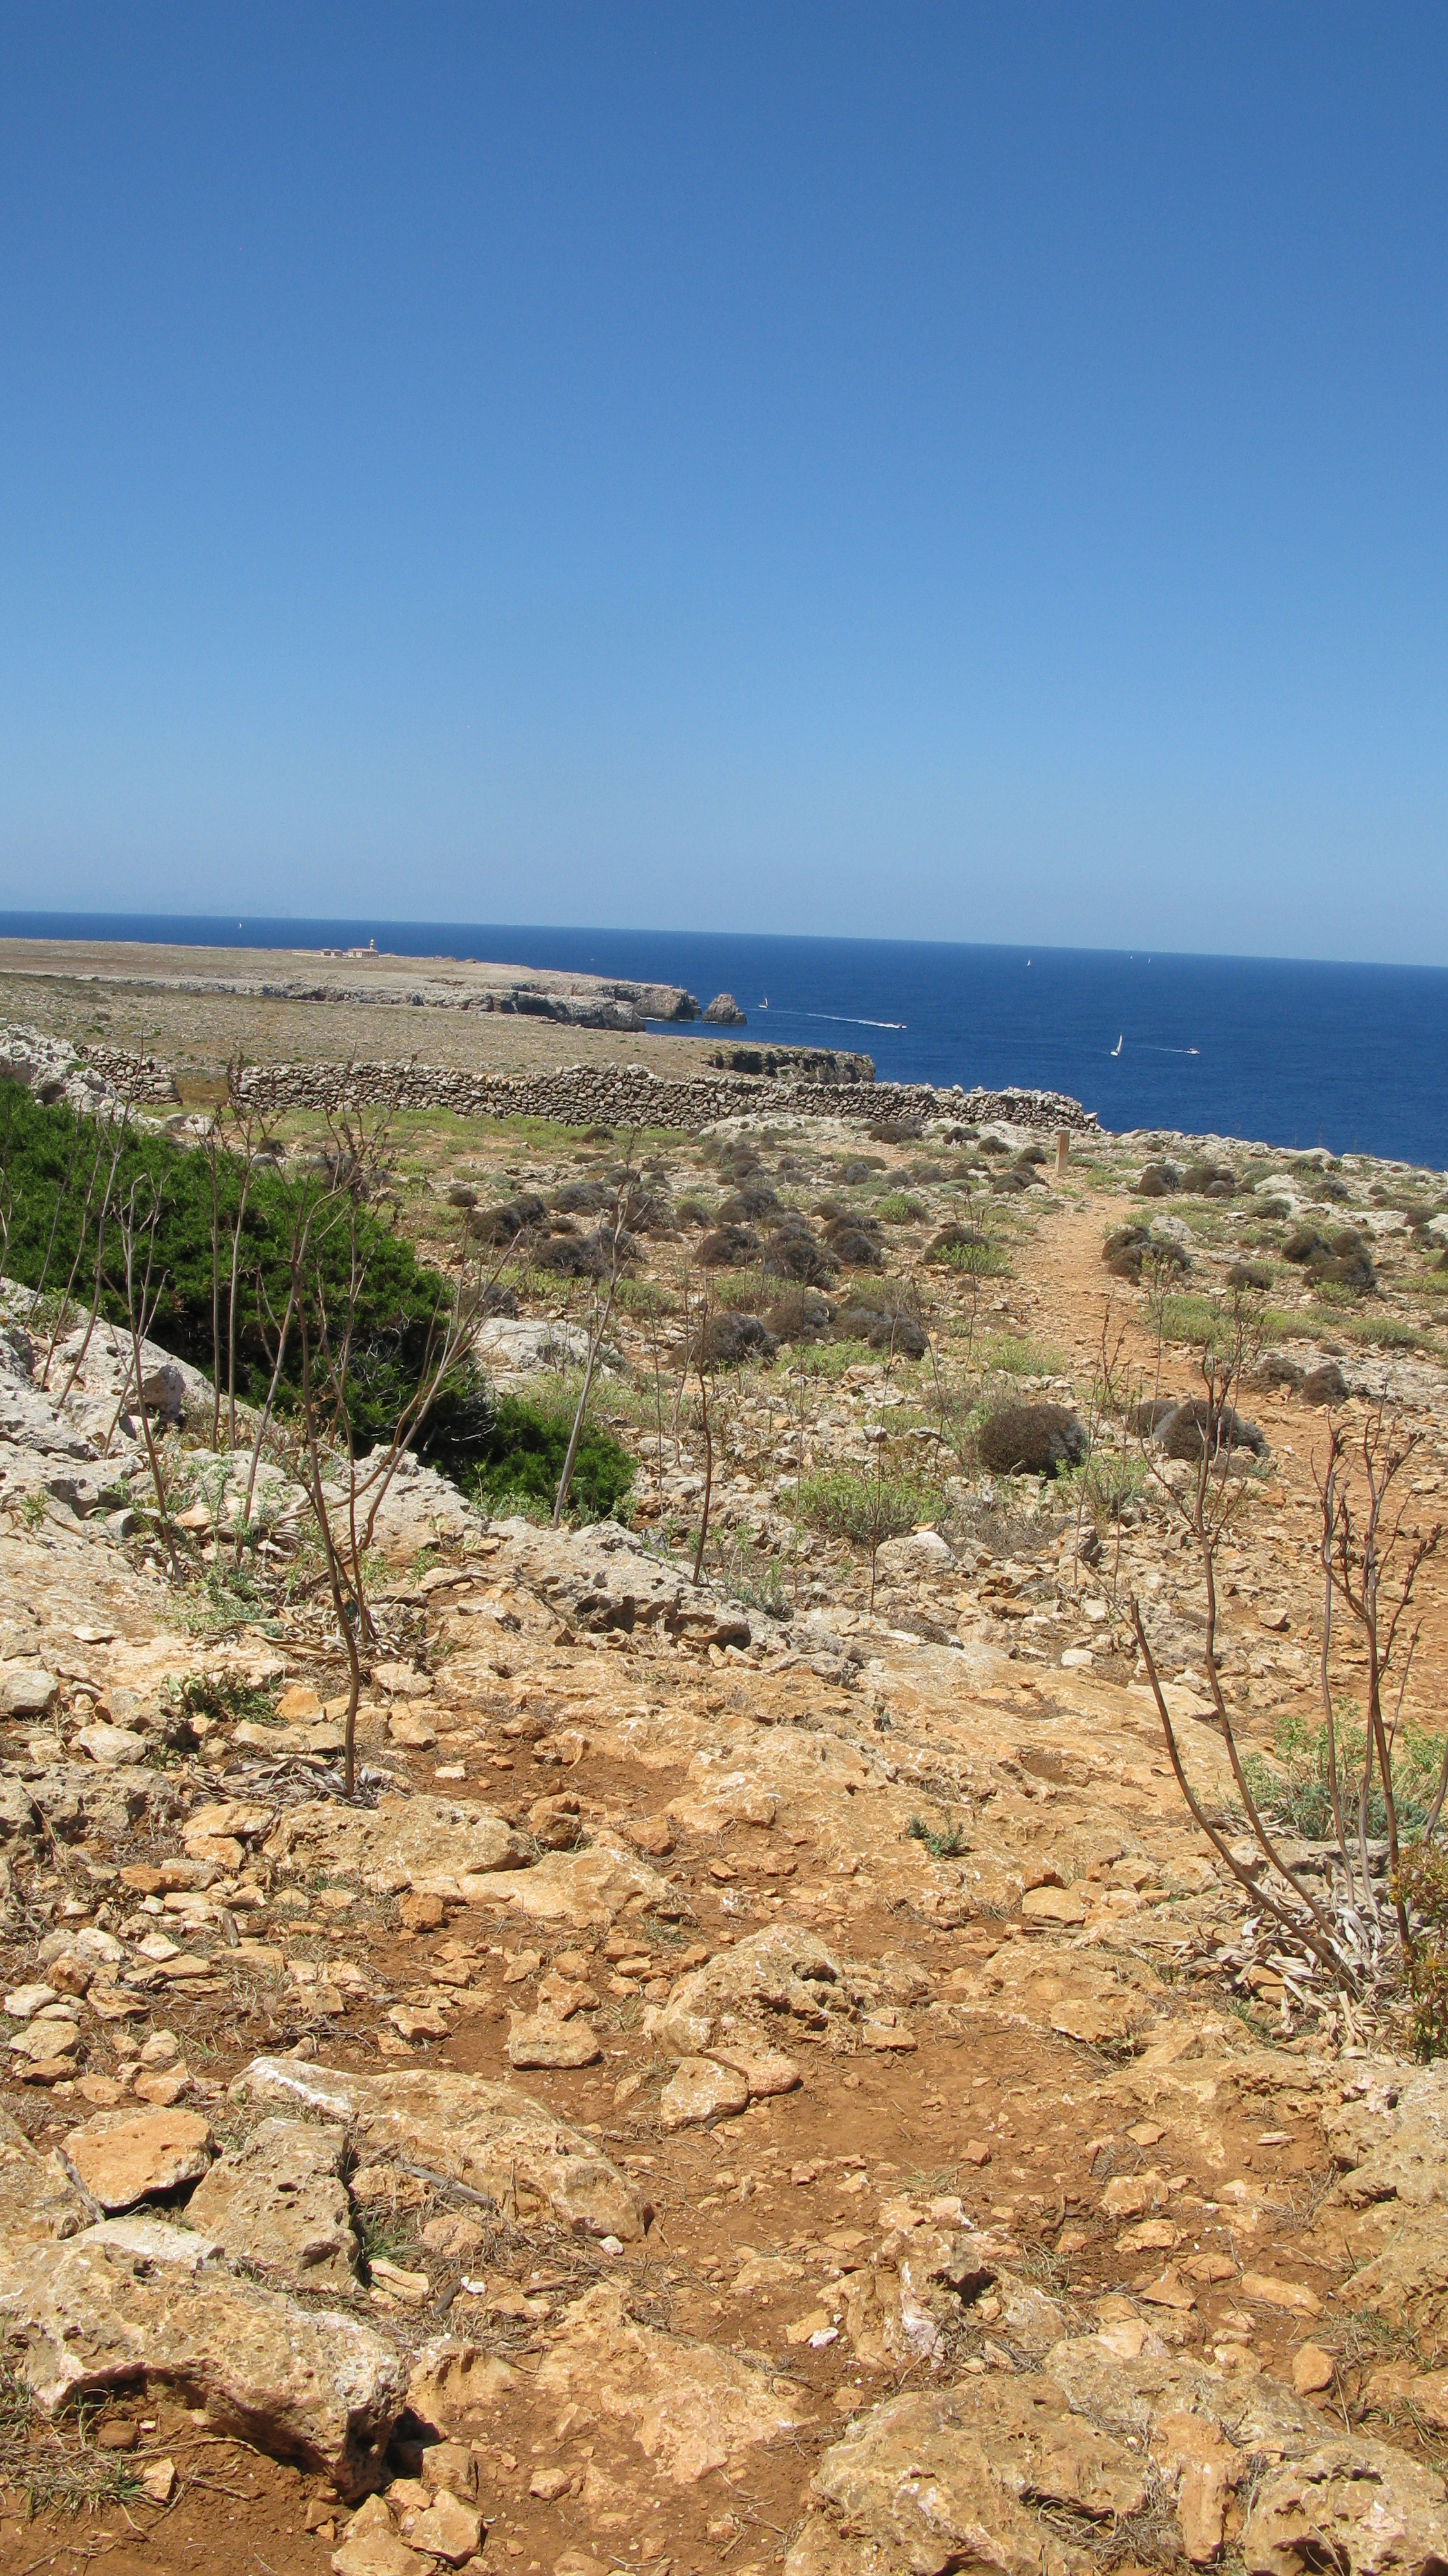 The north west corner of the island is known as 'Dry Menorca' for good reason. There is little rainfall and the trail is hard underfoot